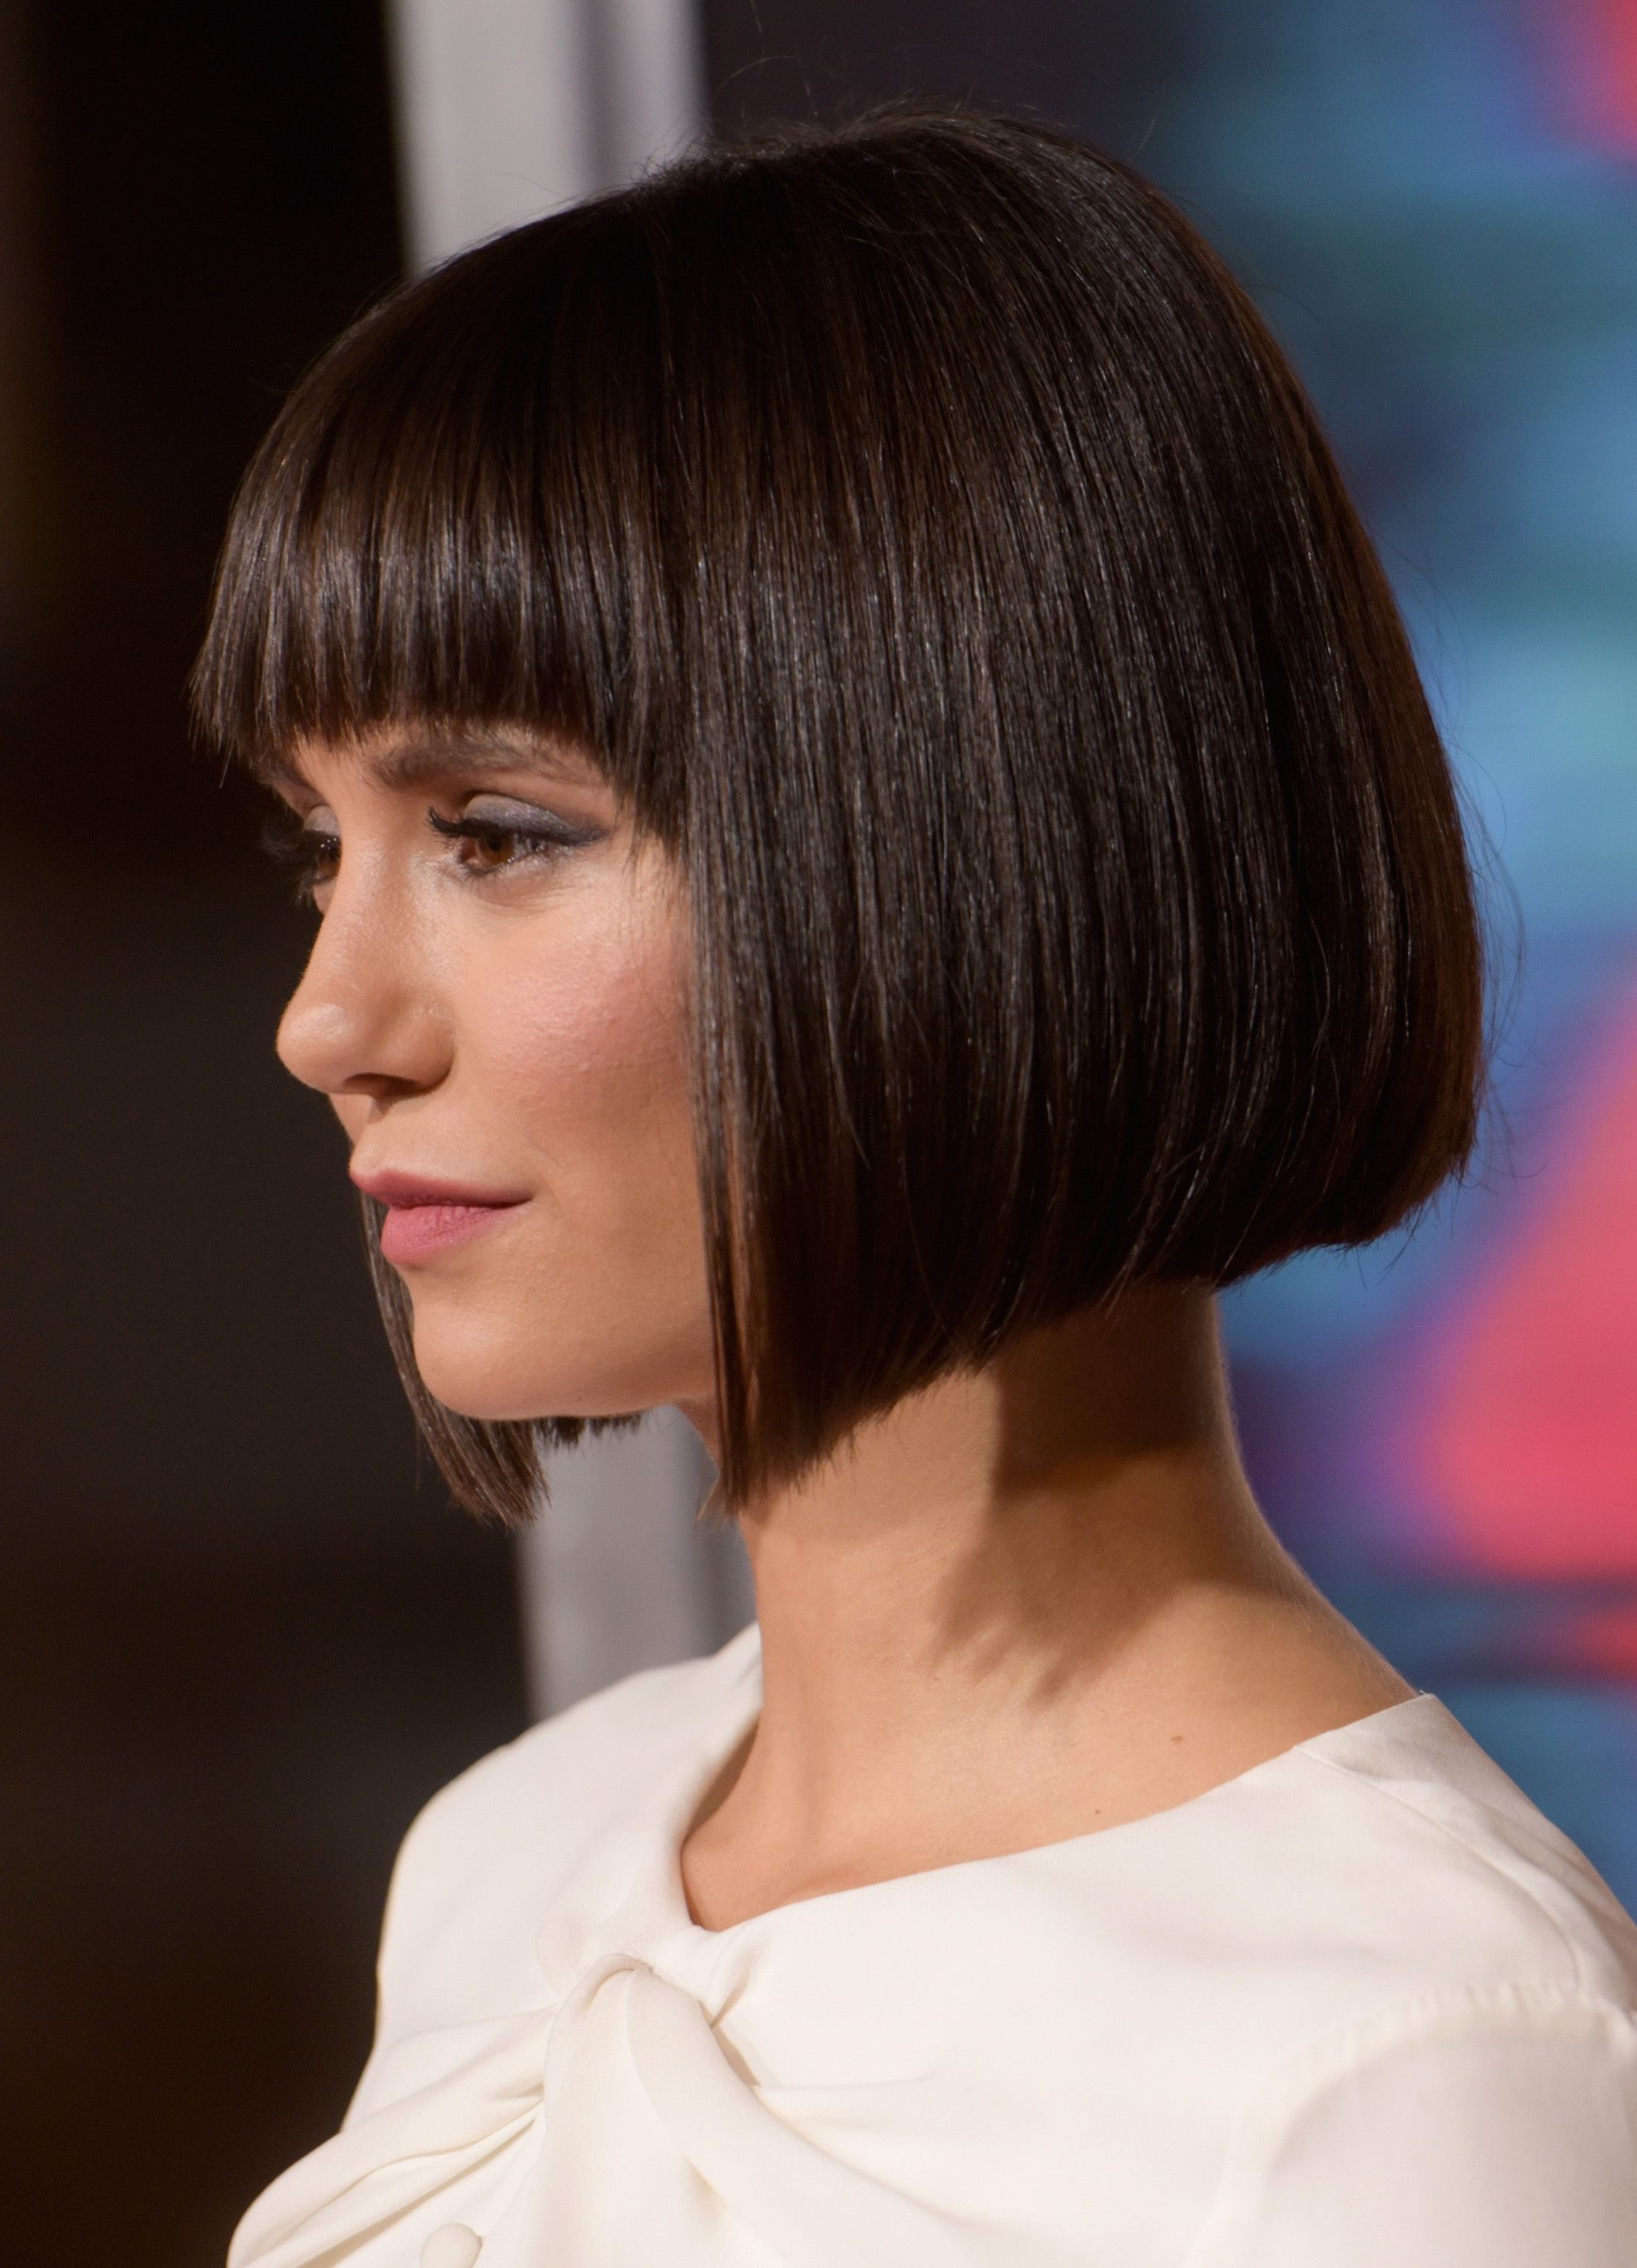 Fashionable Bob Hairstyles With Full Fringe With 50 Best Bob Styles Of 2018 – Bob Haircuts & Hairstyles For Women (View 14 of 20)